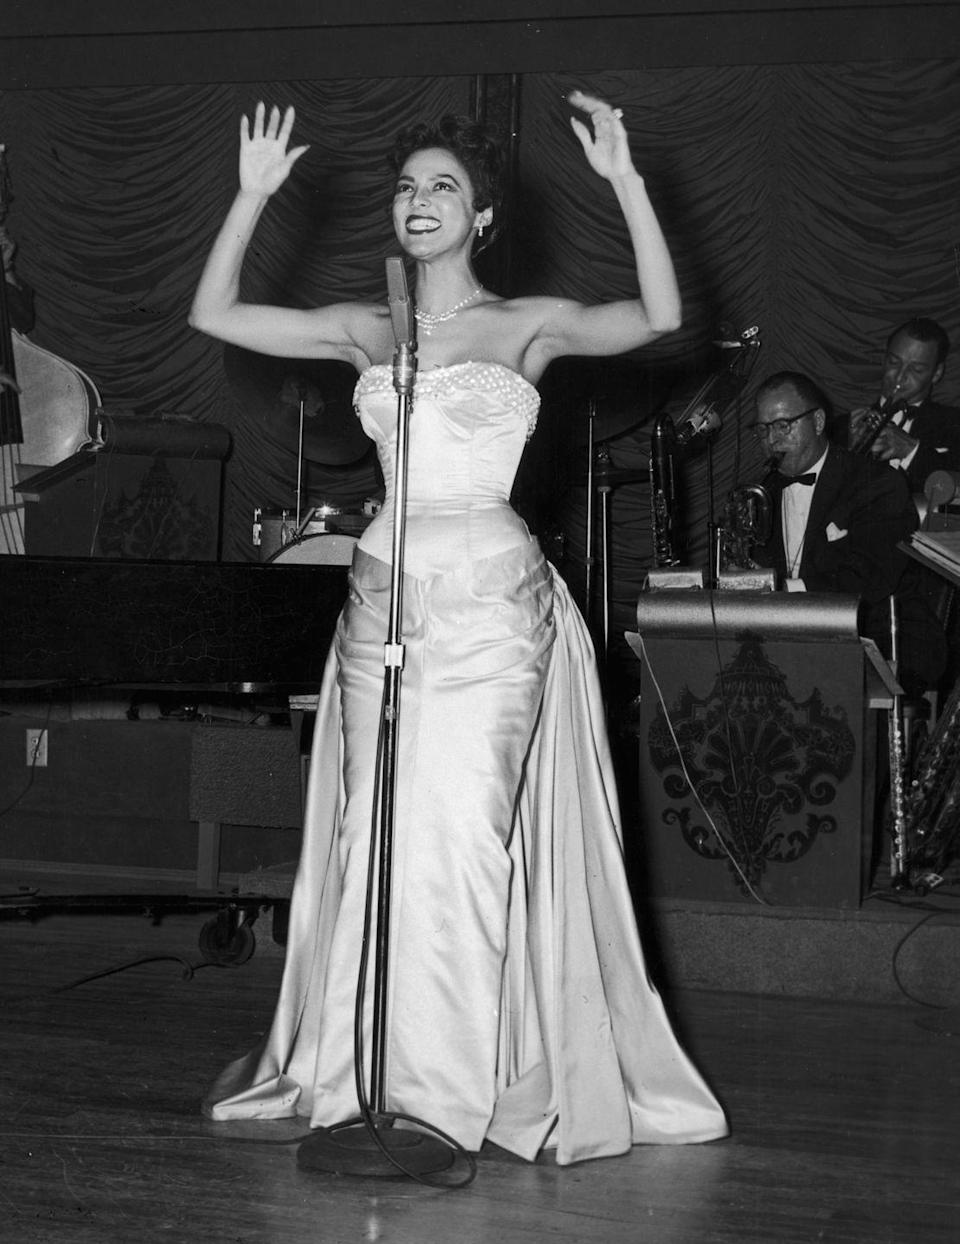 """<p>After a brief hiatus from performing, Dandridge embarked on a solo singing career and became a regular on the nightclub circuit, including at the <a href=""""https://www.britannica.com/biography/Dorothy-Dandridge"""" rel=""""nofollow noopener"""" target=""""_blank"""" data-ylk=""""slk:Waldorf Astoria's Empire Room"""" class=""""link rapid-noclick-resp"""">Waldorf Astoria's Empire Room</a>.</p>"""